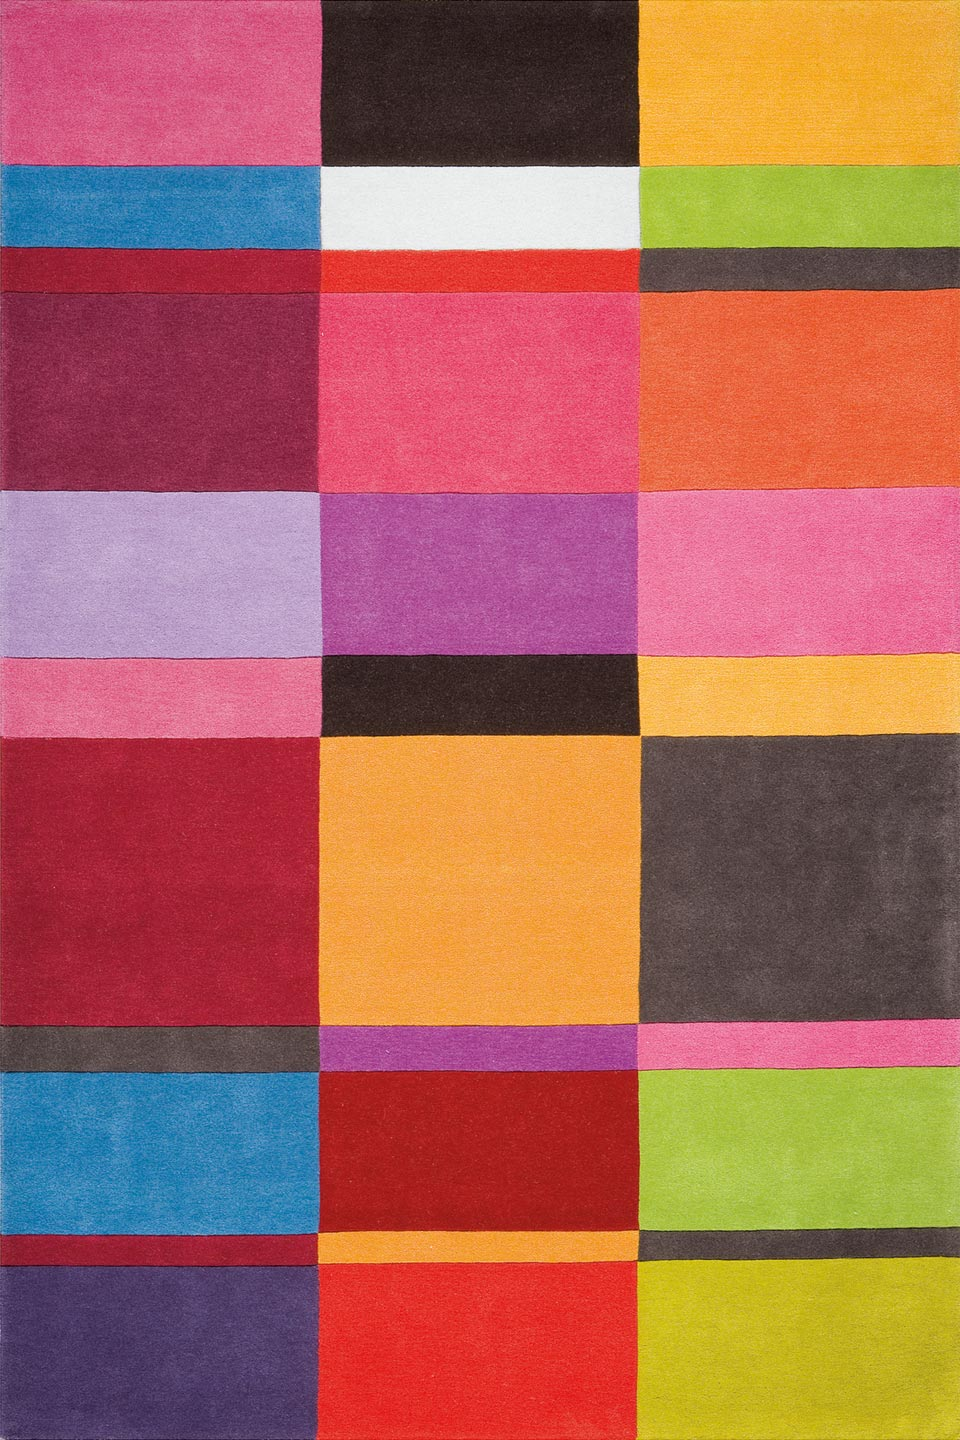 Tapis multicolores motif rectangles unis ligne pure tapis contemporains fabriqu s la main Beaux tapis contemporains